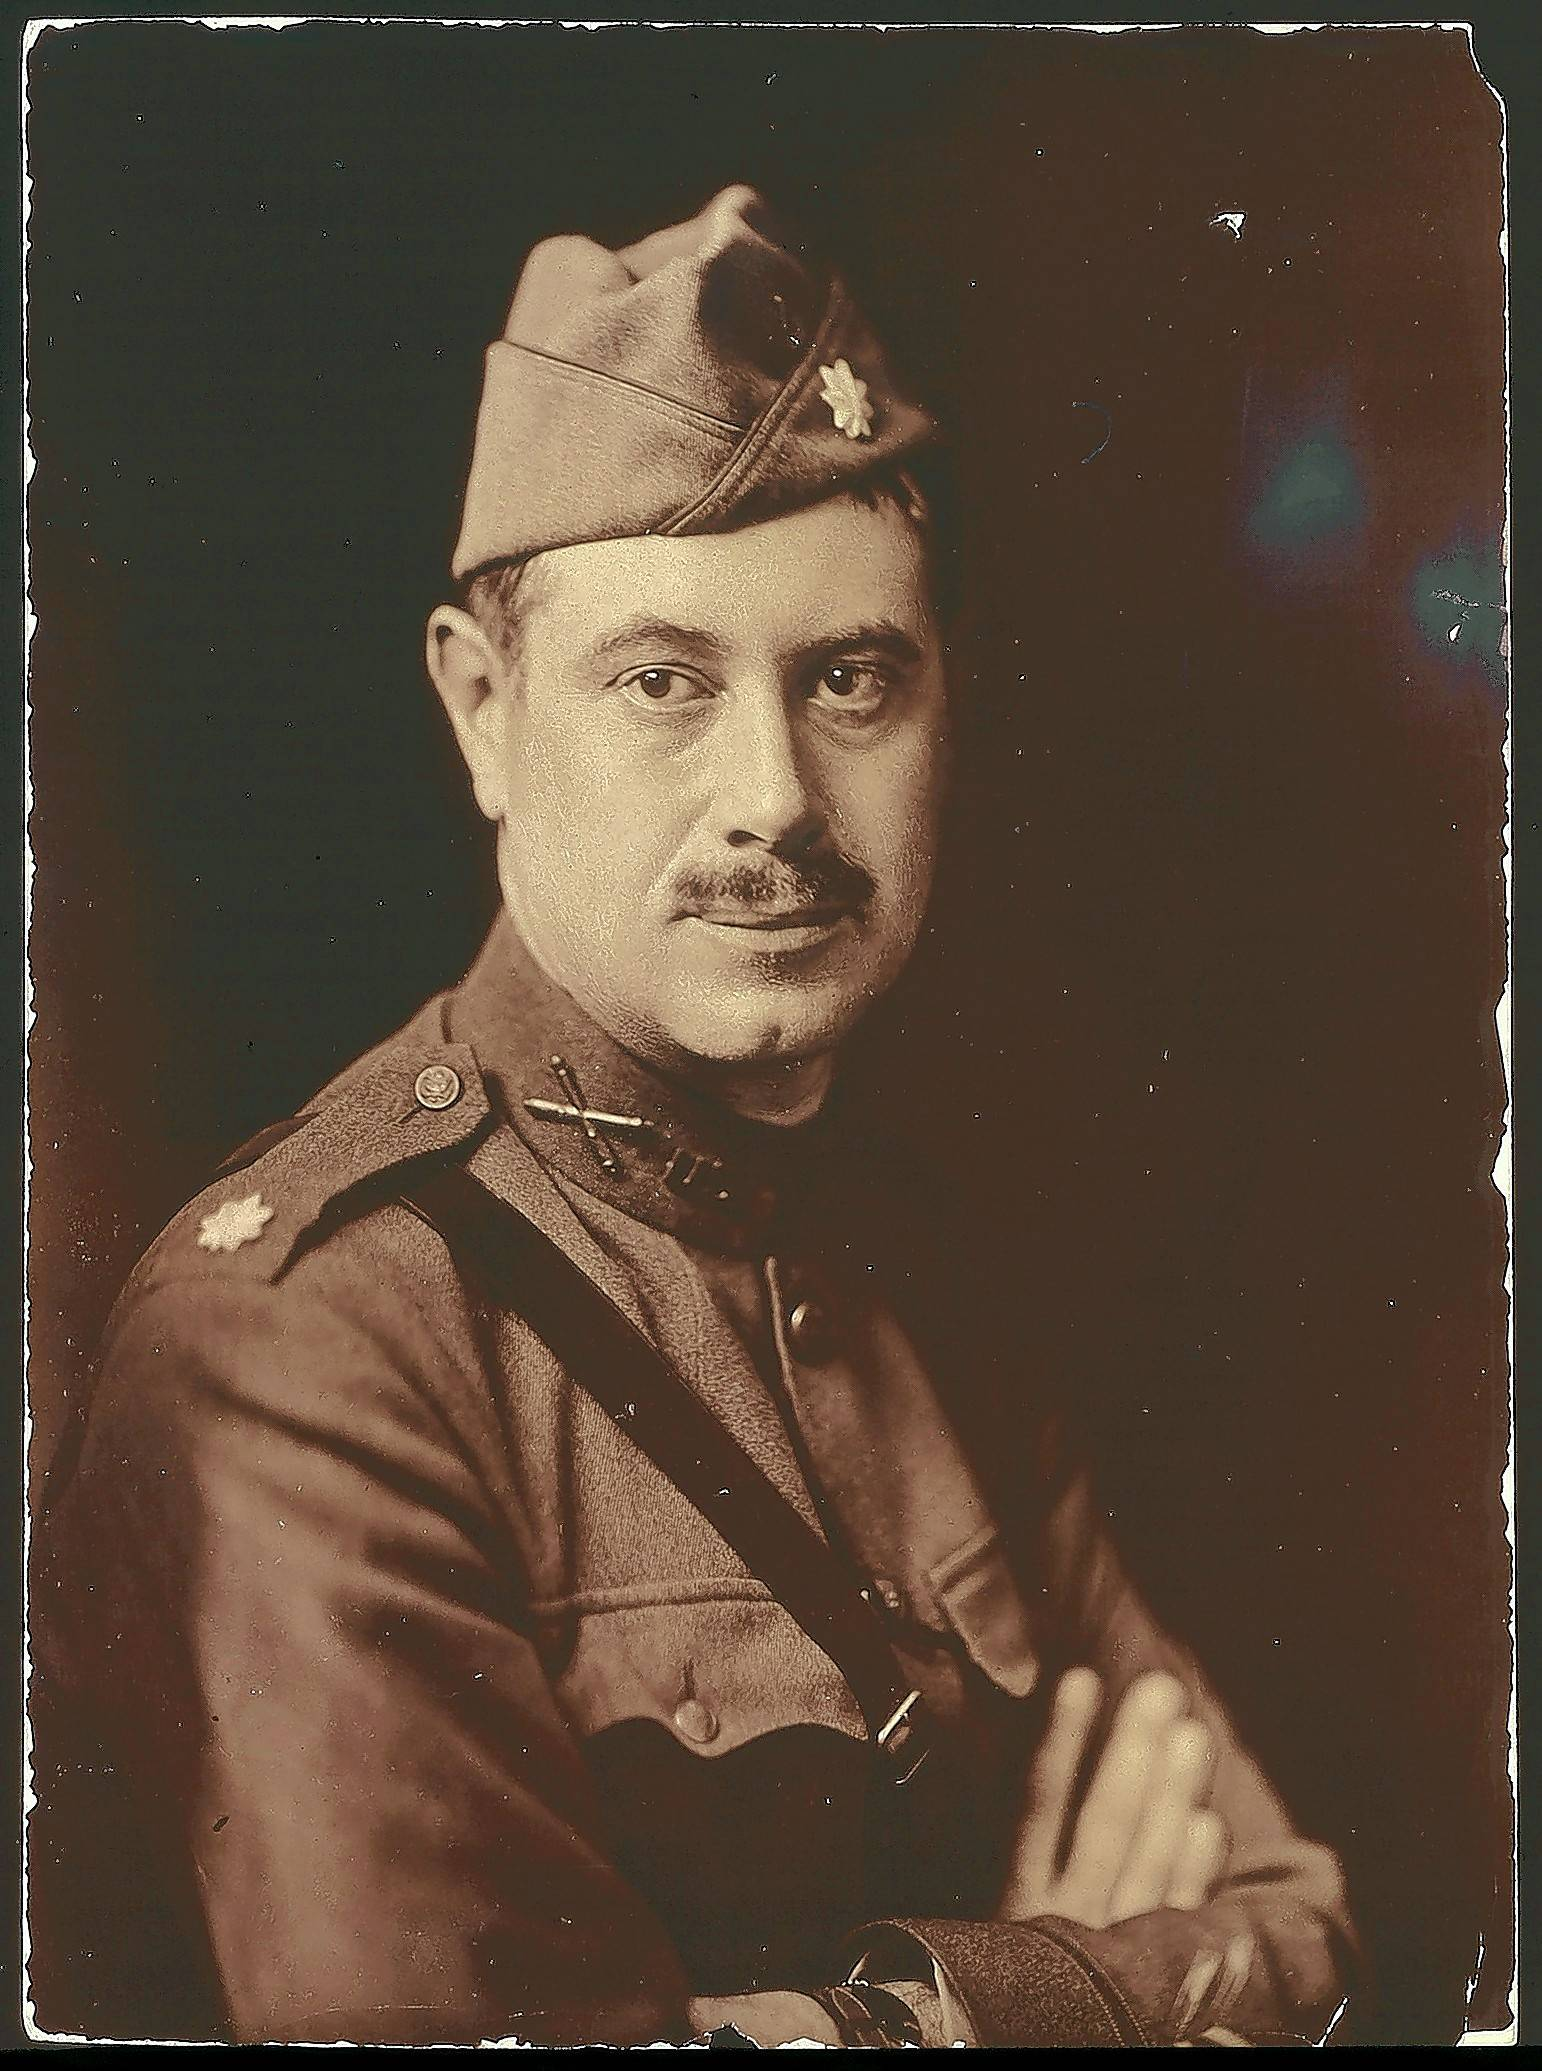 Col. Robert R. McCormick, Cantigny's benefactor, led an artillery unit in the Battle of Cantigny during World War I.